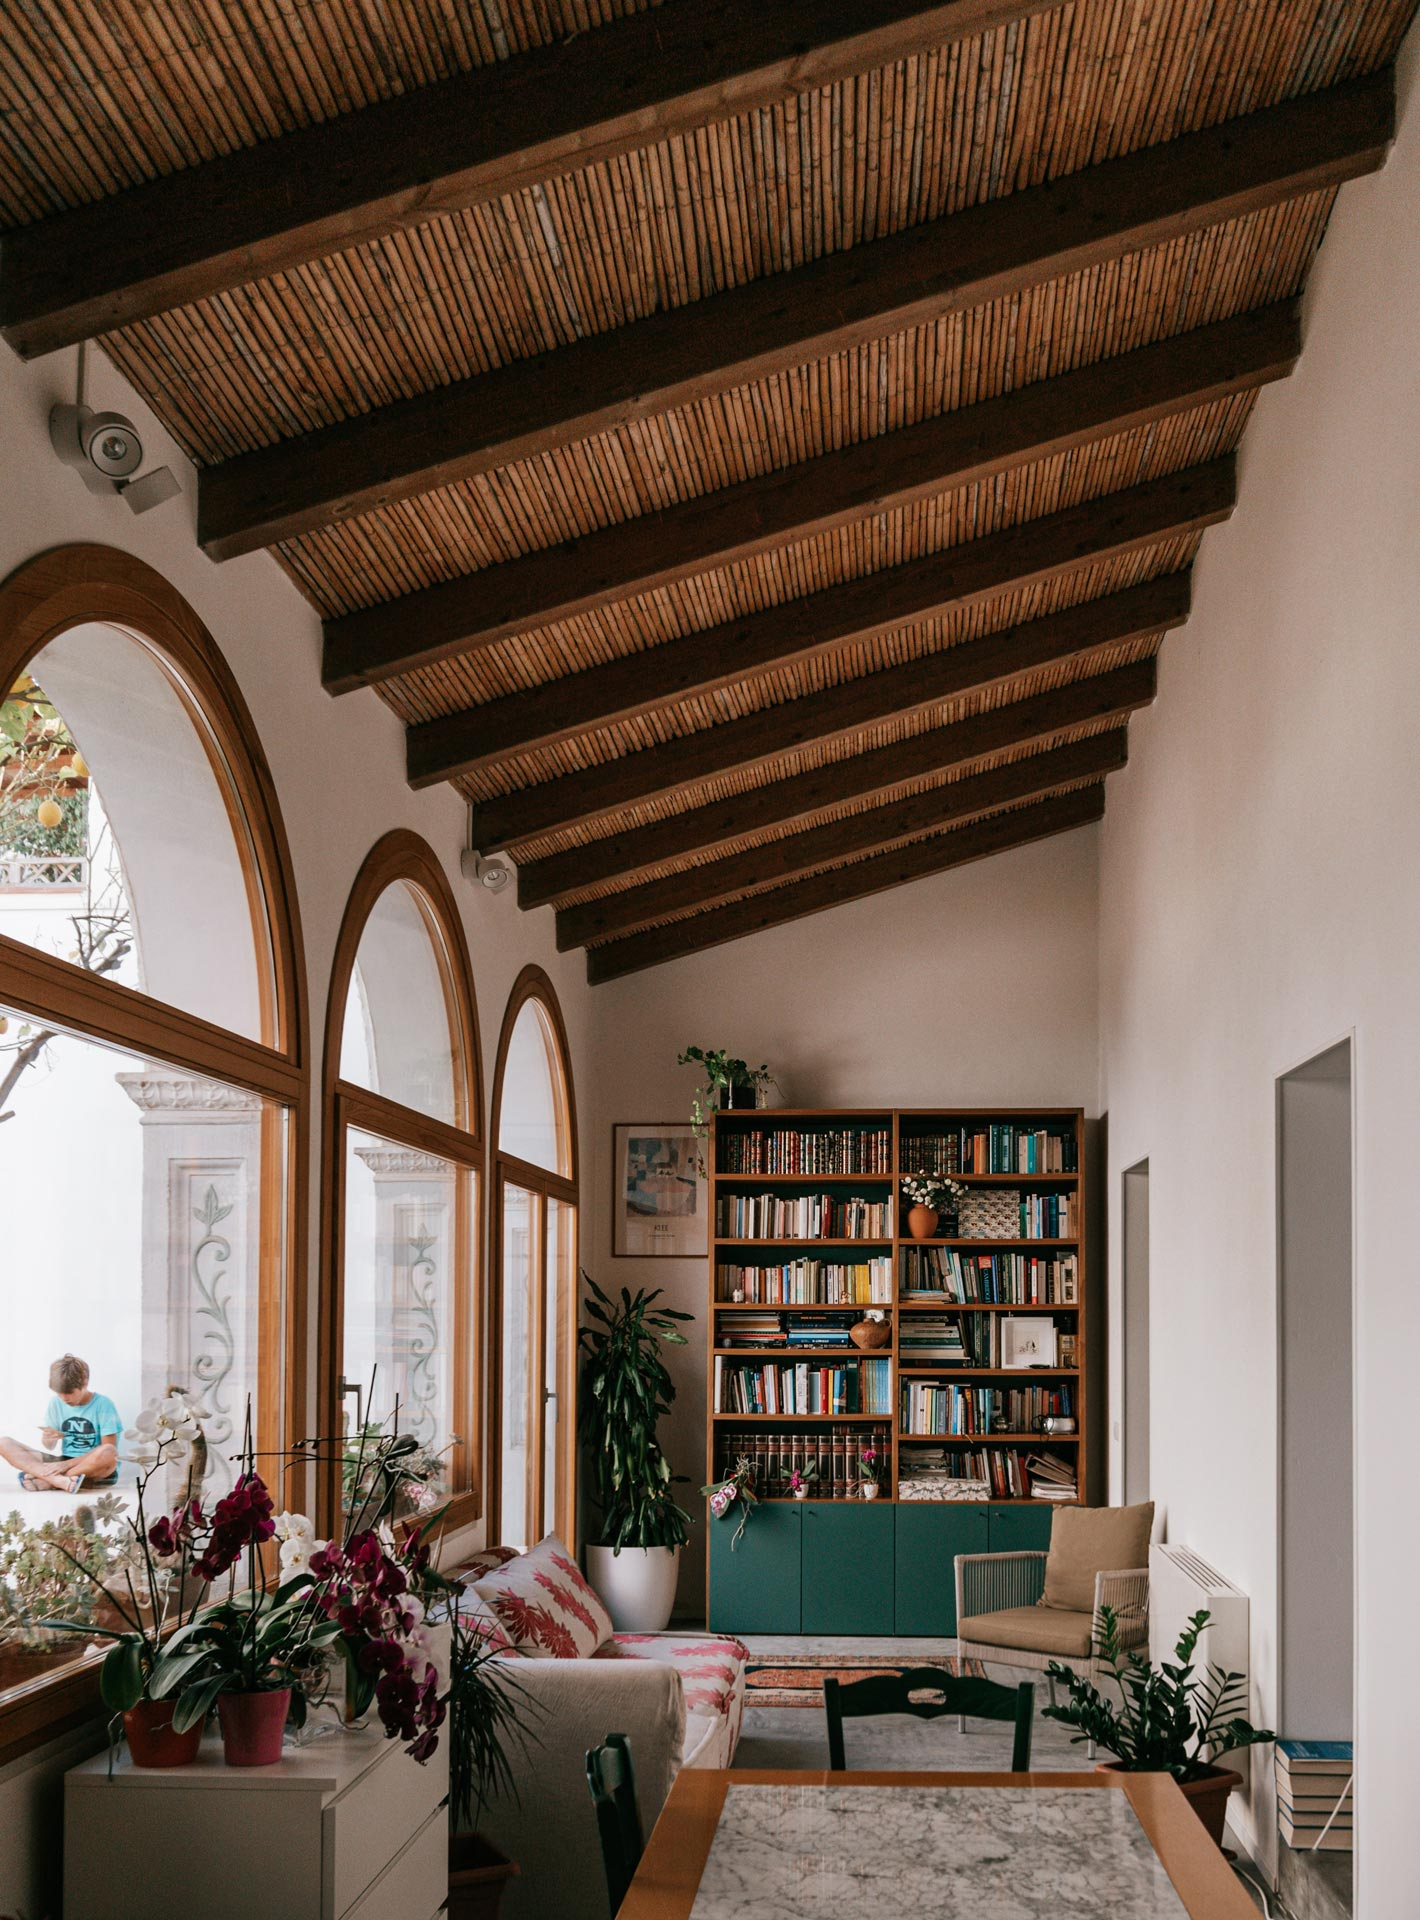 A living room with a slanted wooden ceiling with wooden beams, three arched windows, furniture, and a wooden bookcase with green cabinet drawers at the bottom.